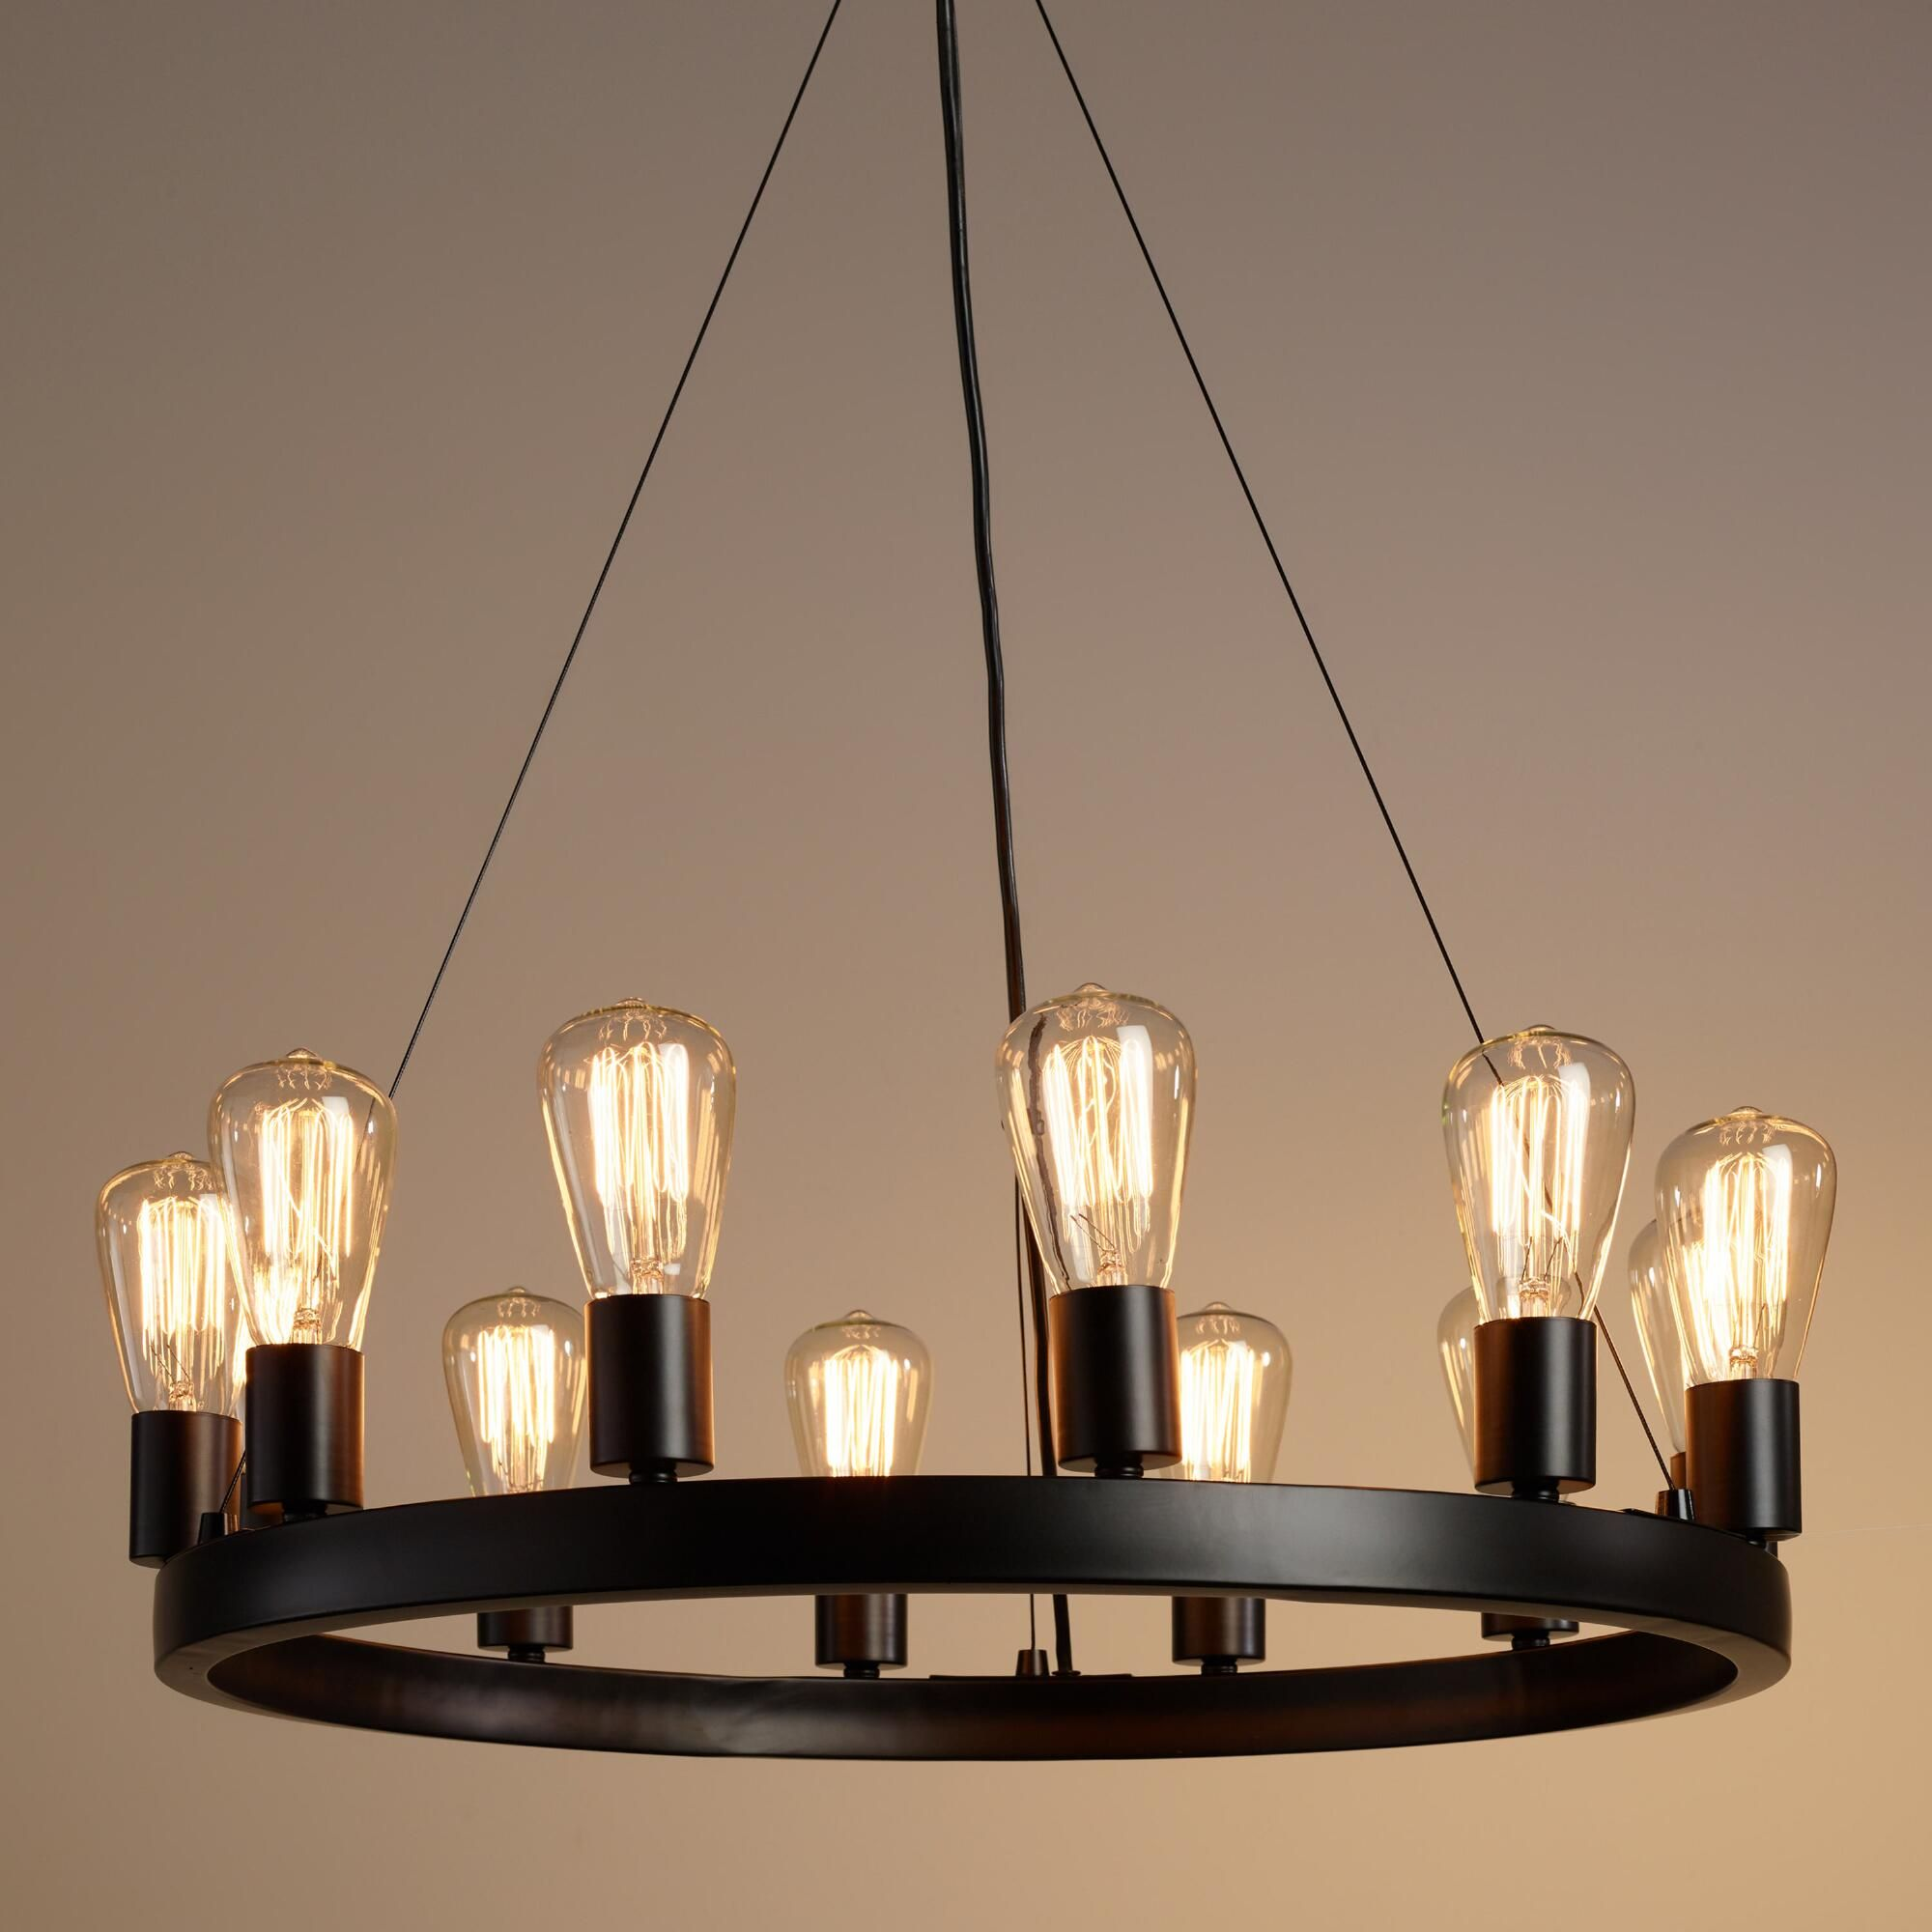 Bathroom Light Fixtures With Edison Bulbs crafted of iron with an industrial-style black finish, our